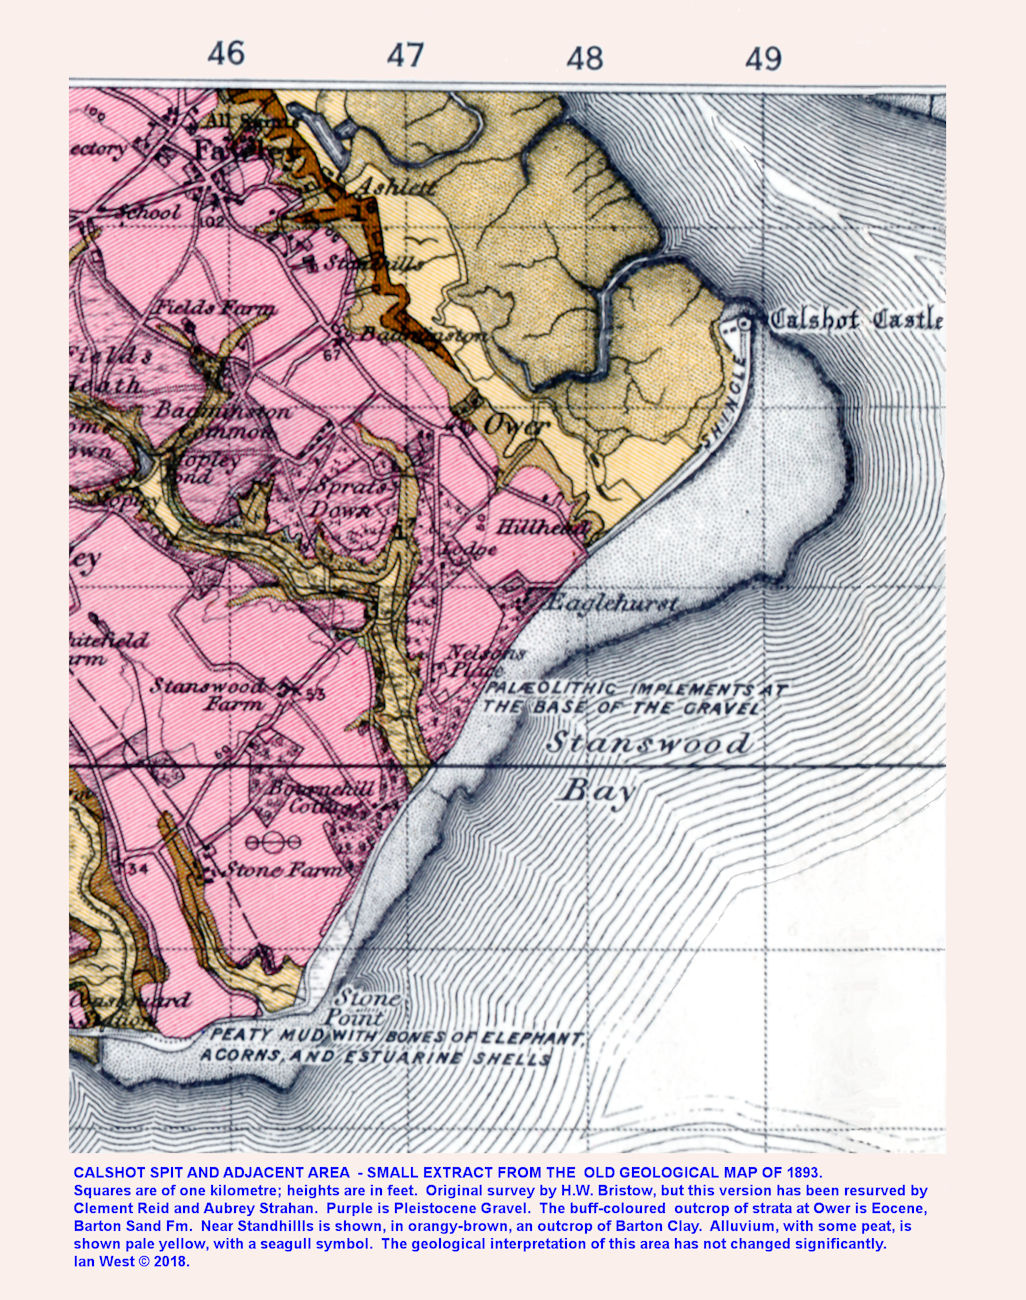 Geology of Calshot Spit as shown on a small part of the old Geological Survey Map, Lymington Sheet, No. 330, Drift, 1893 edition